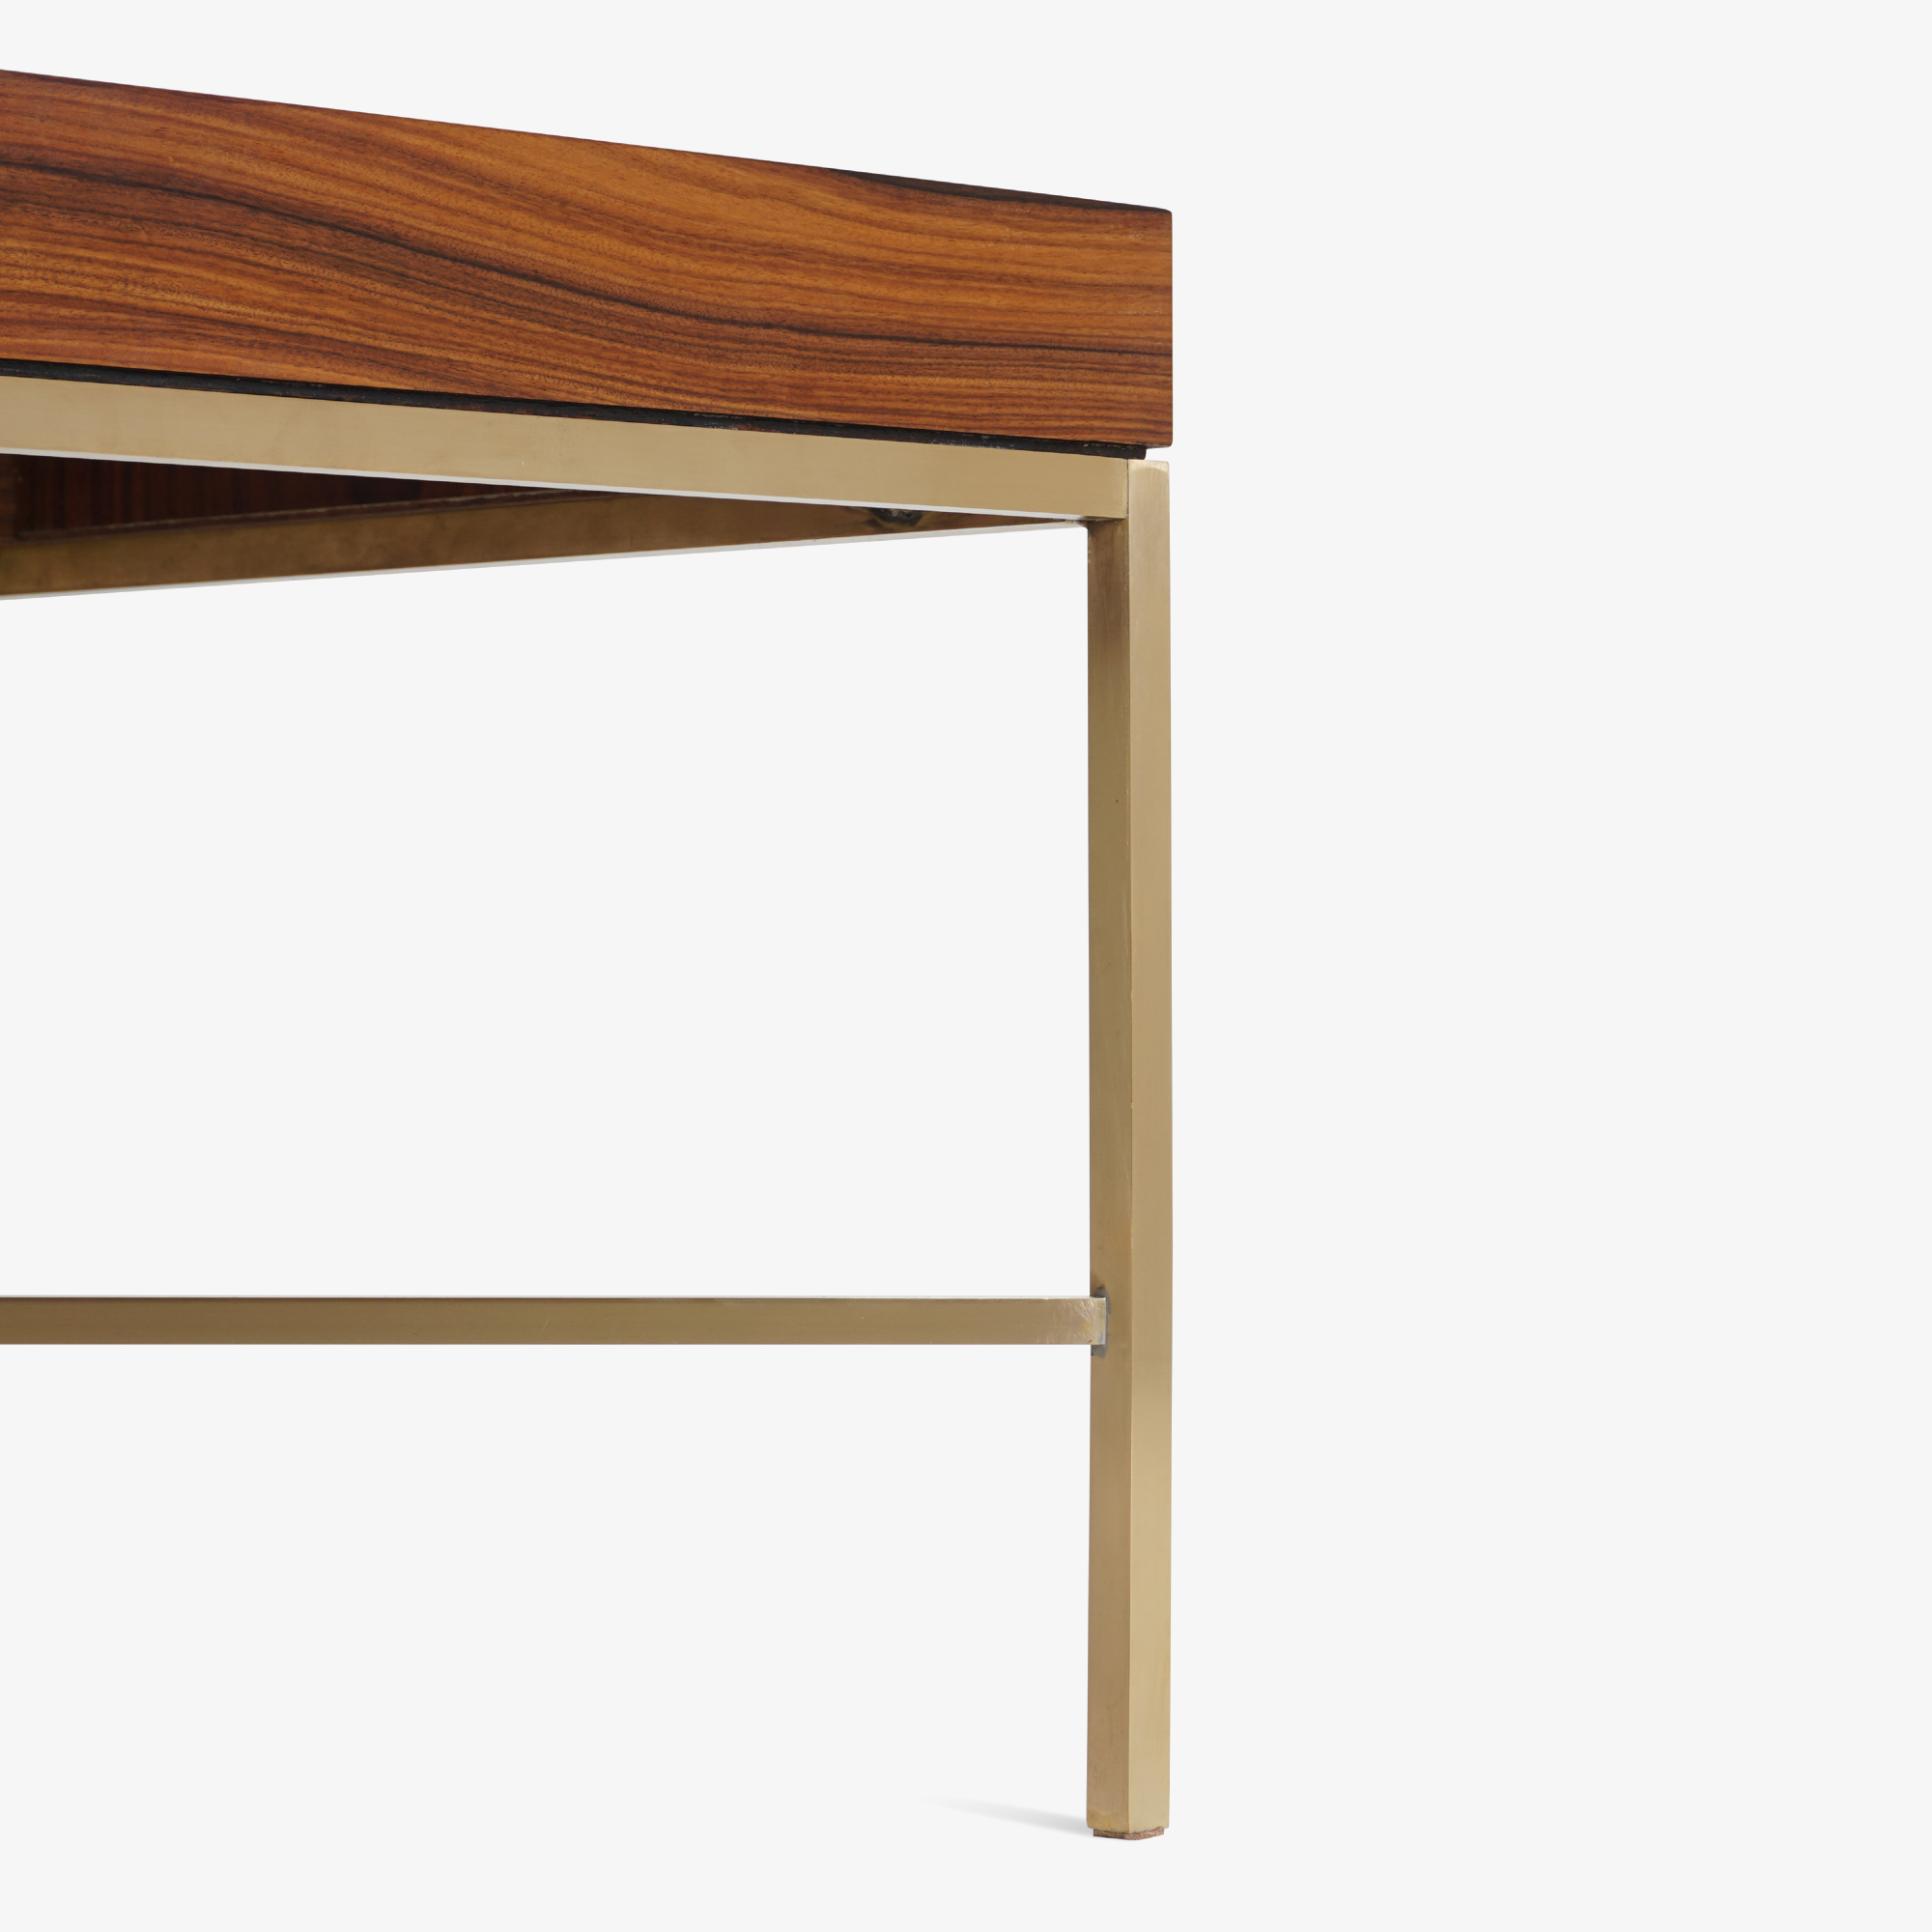 Brass Cross Stretcher Table in Rosewood6.png